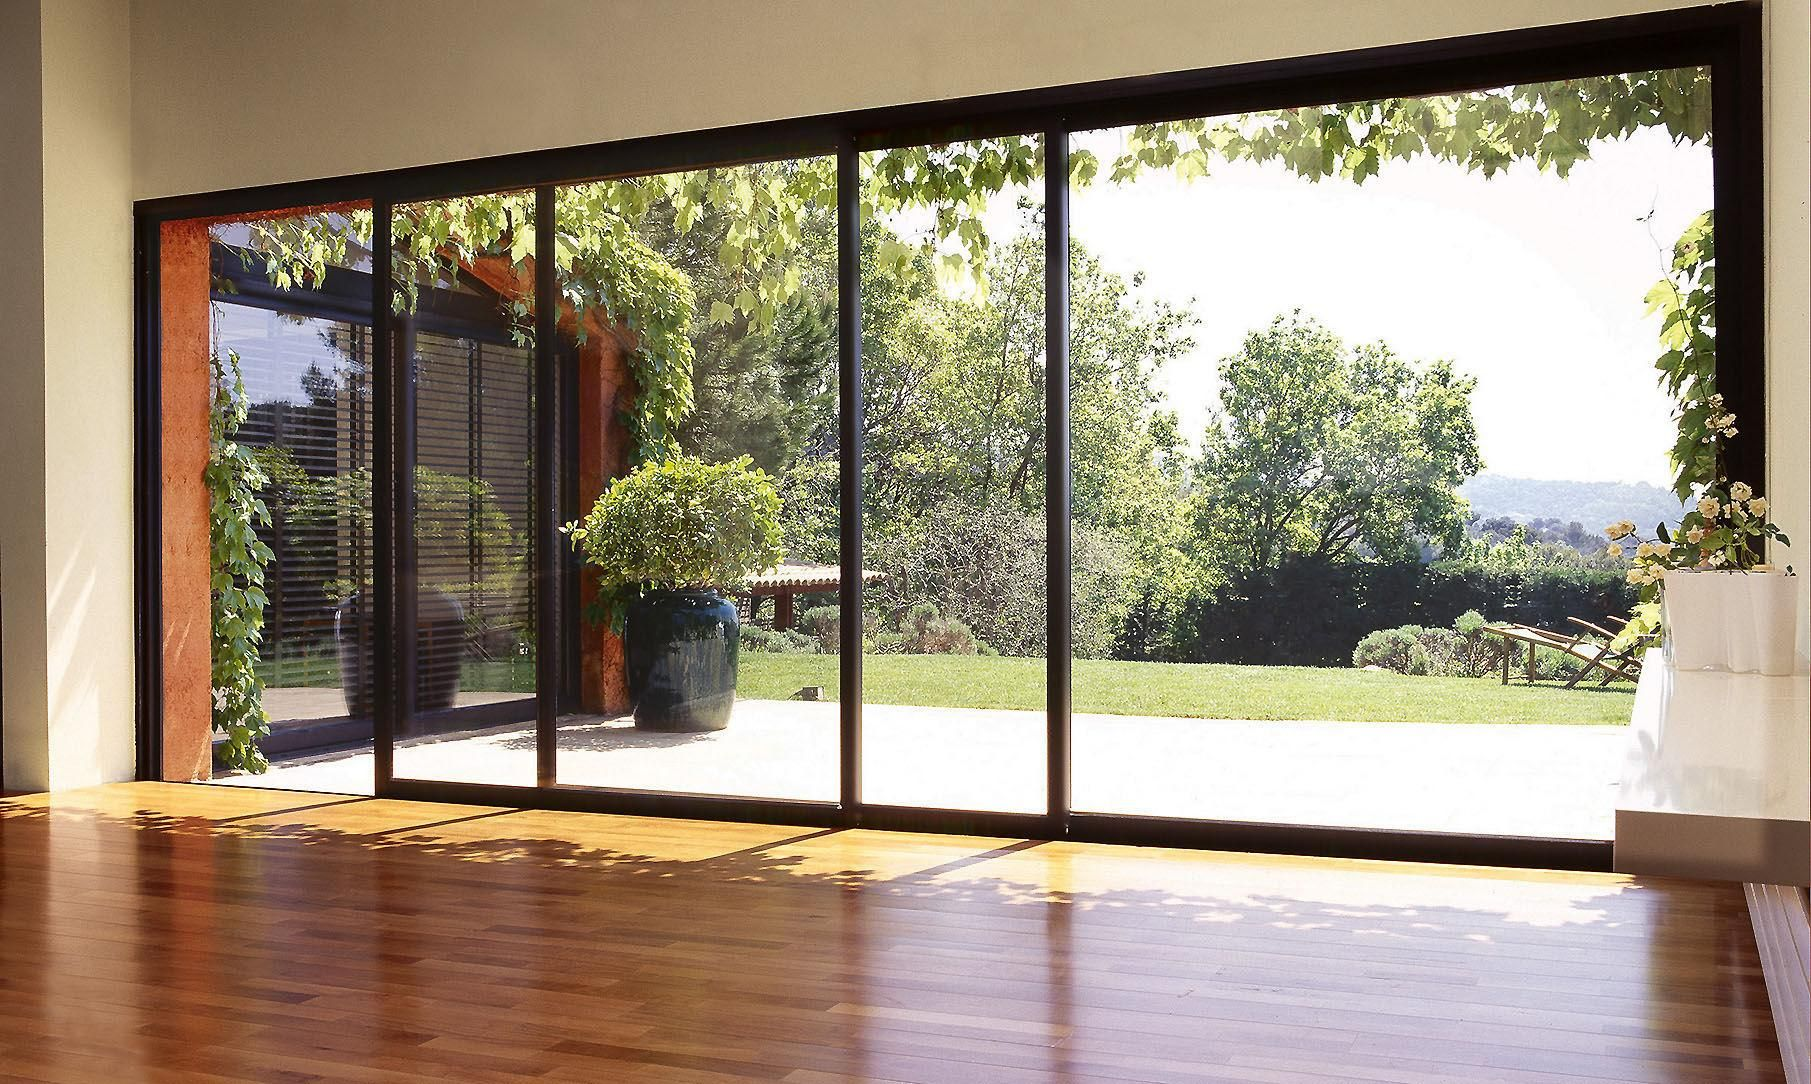 House design with sliding window  modern shower house open  google search  quinchos  pinterest